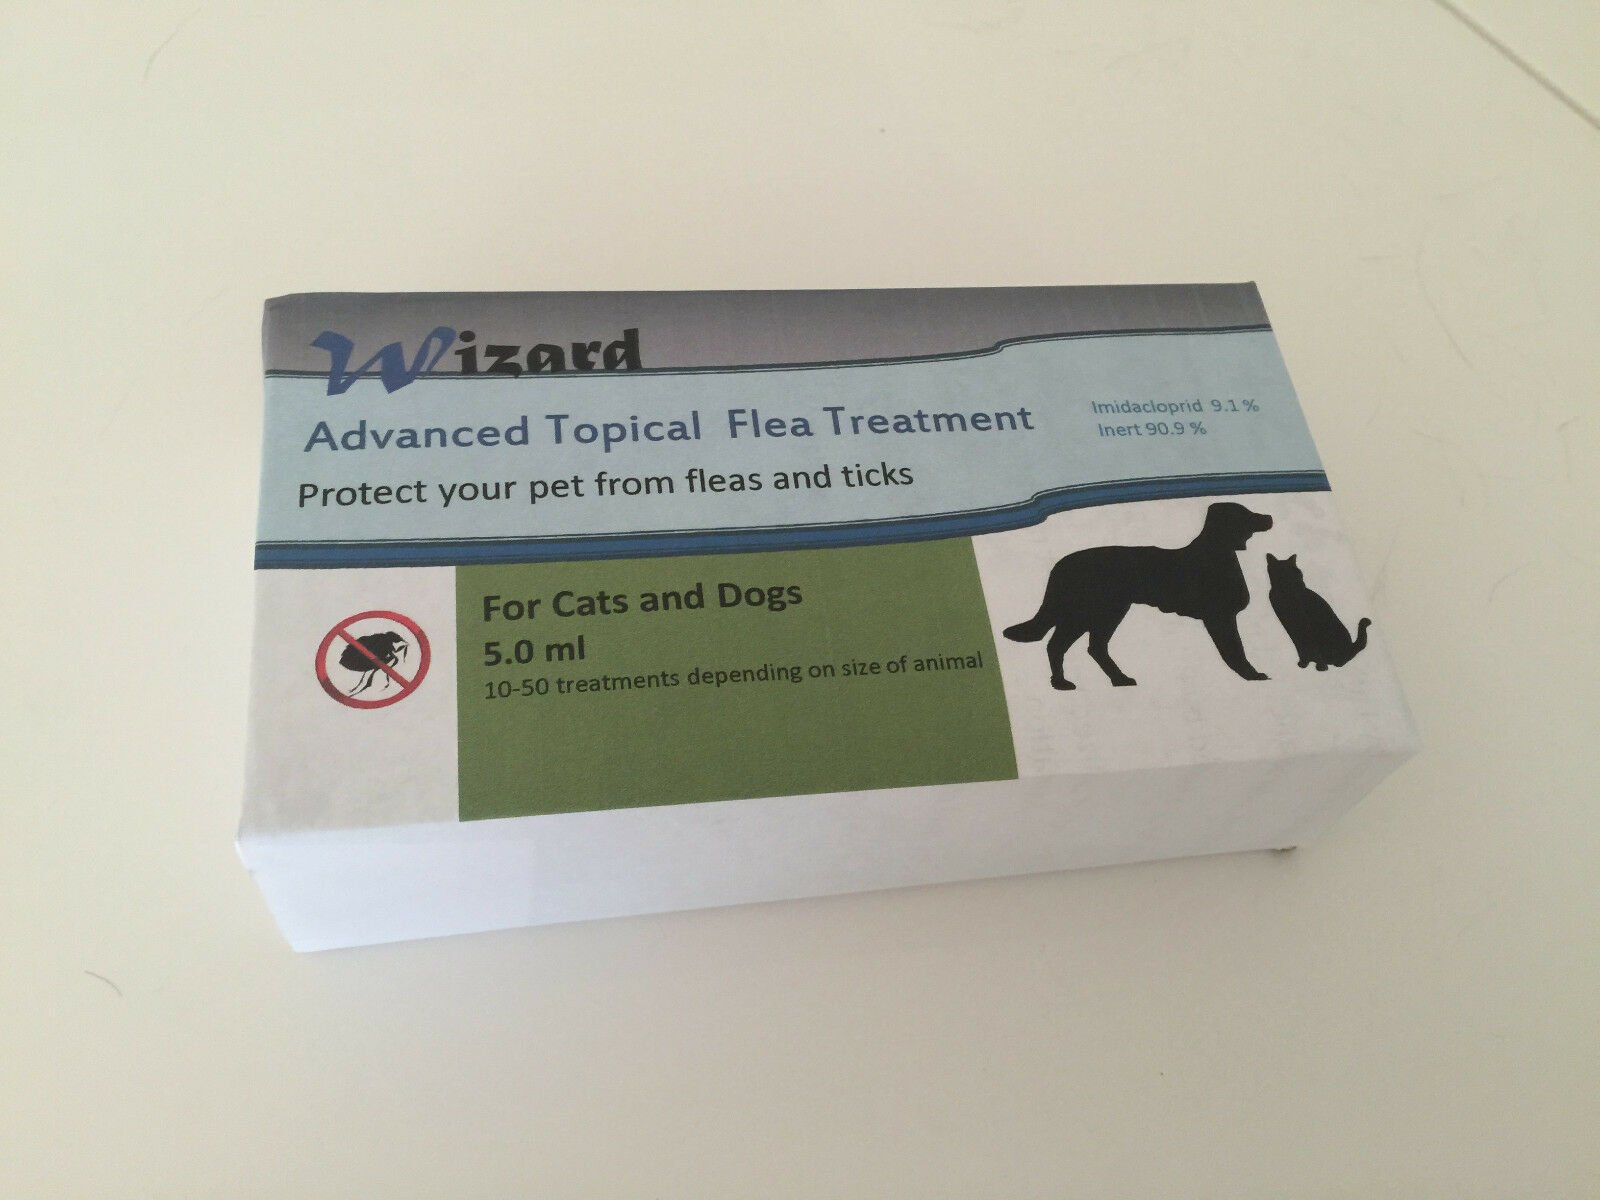 PRO-FRONT ADVANCED FLEA CONTROL-up to 100 TREATMENTS for 6 to 16 pound pets